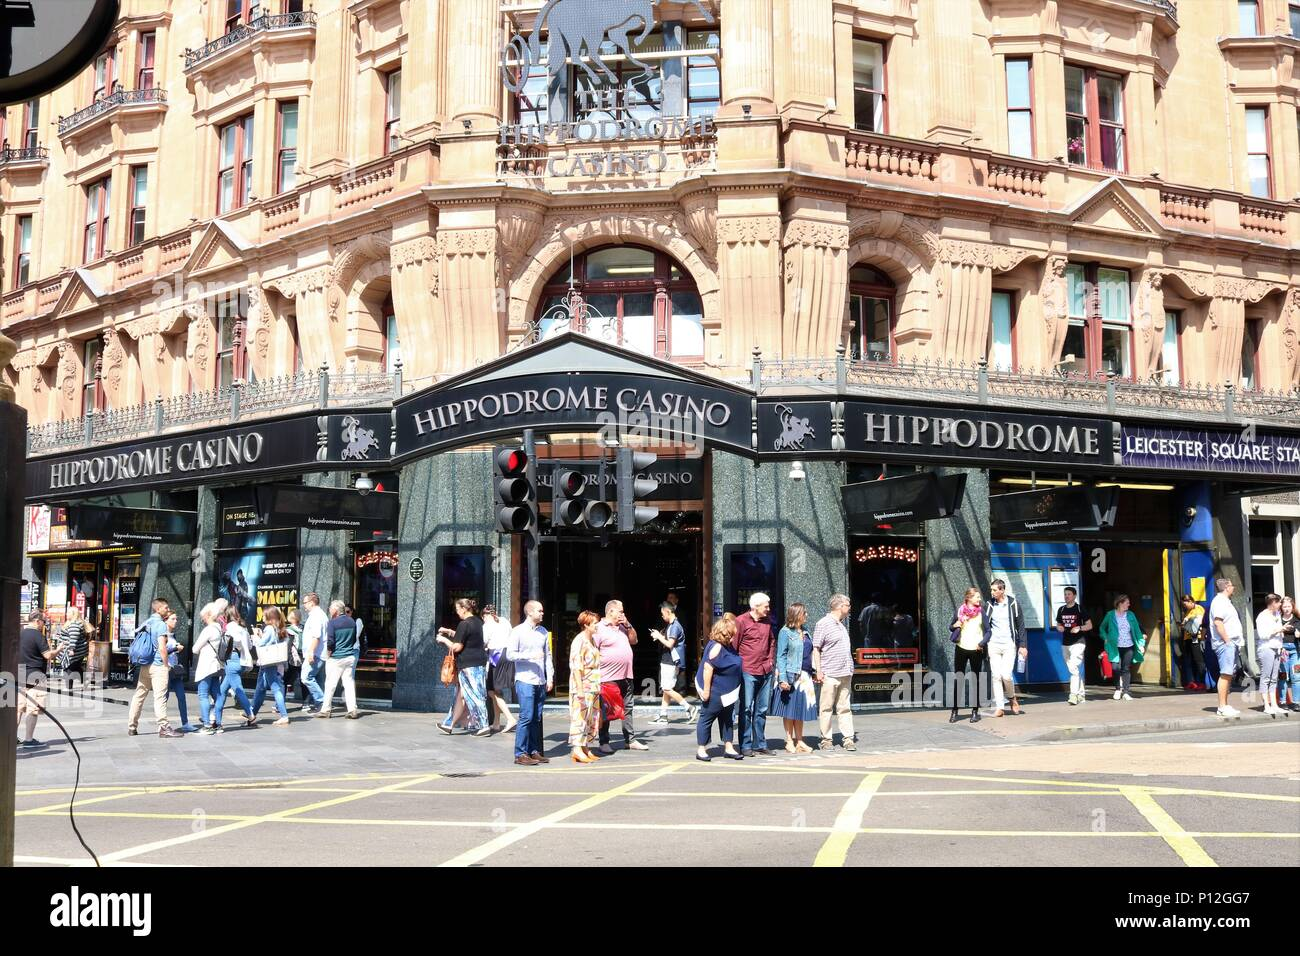 Hippodrome Casino, Leicester Square, London, UK showing people walking around in the sunshine.  Theatre and tourism area. - Stock Image